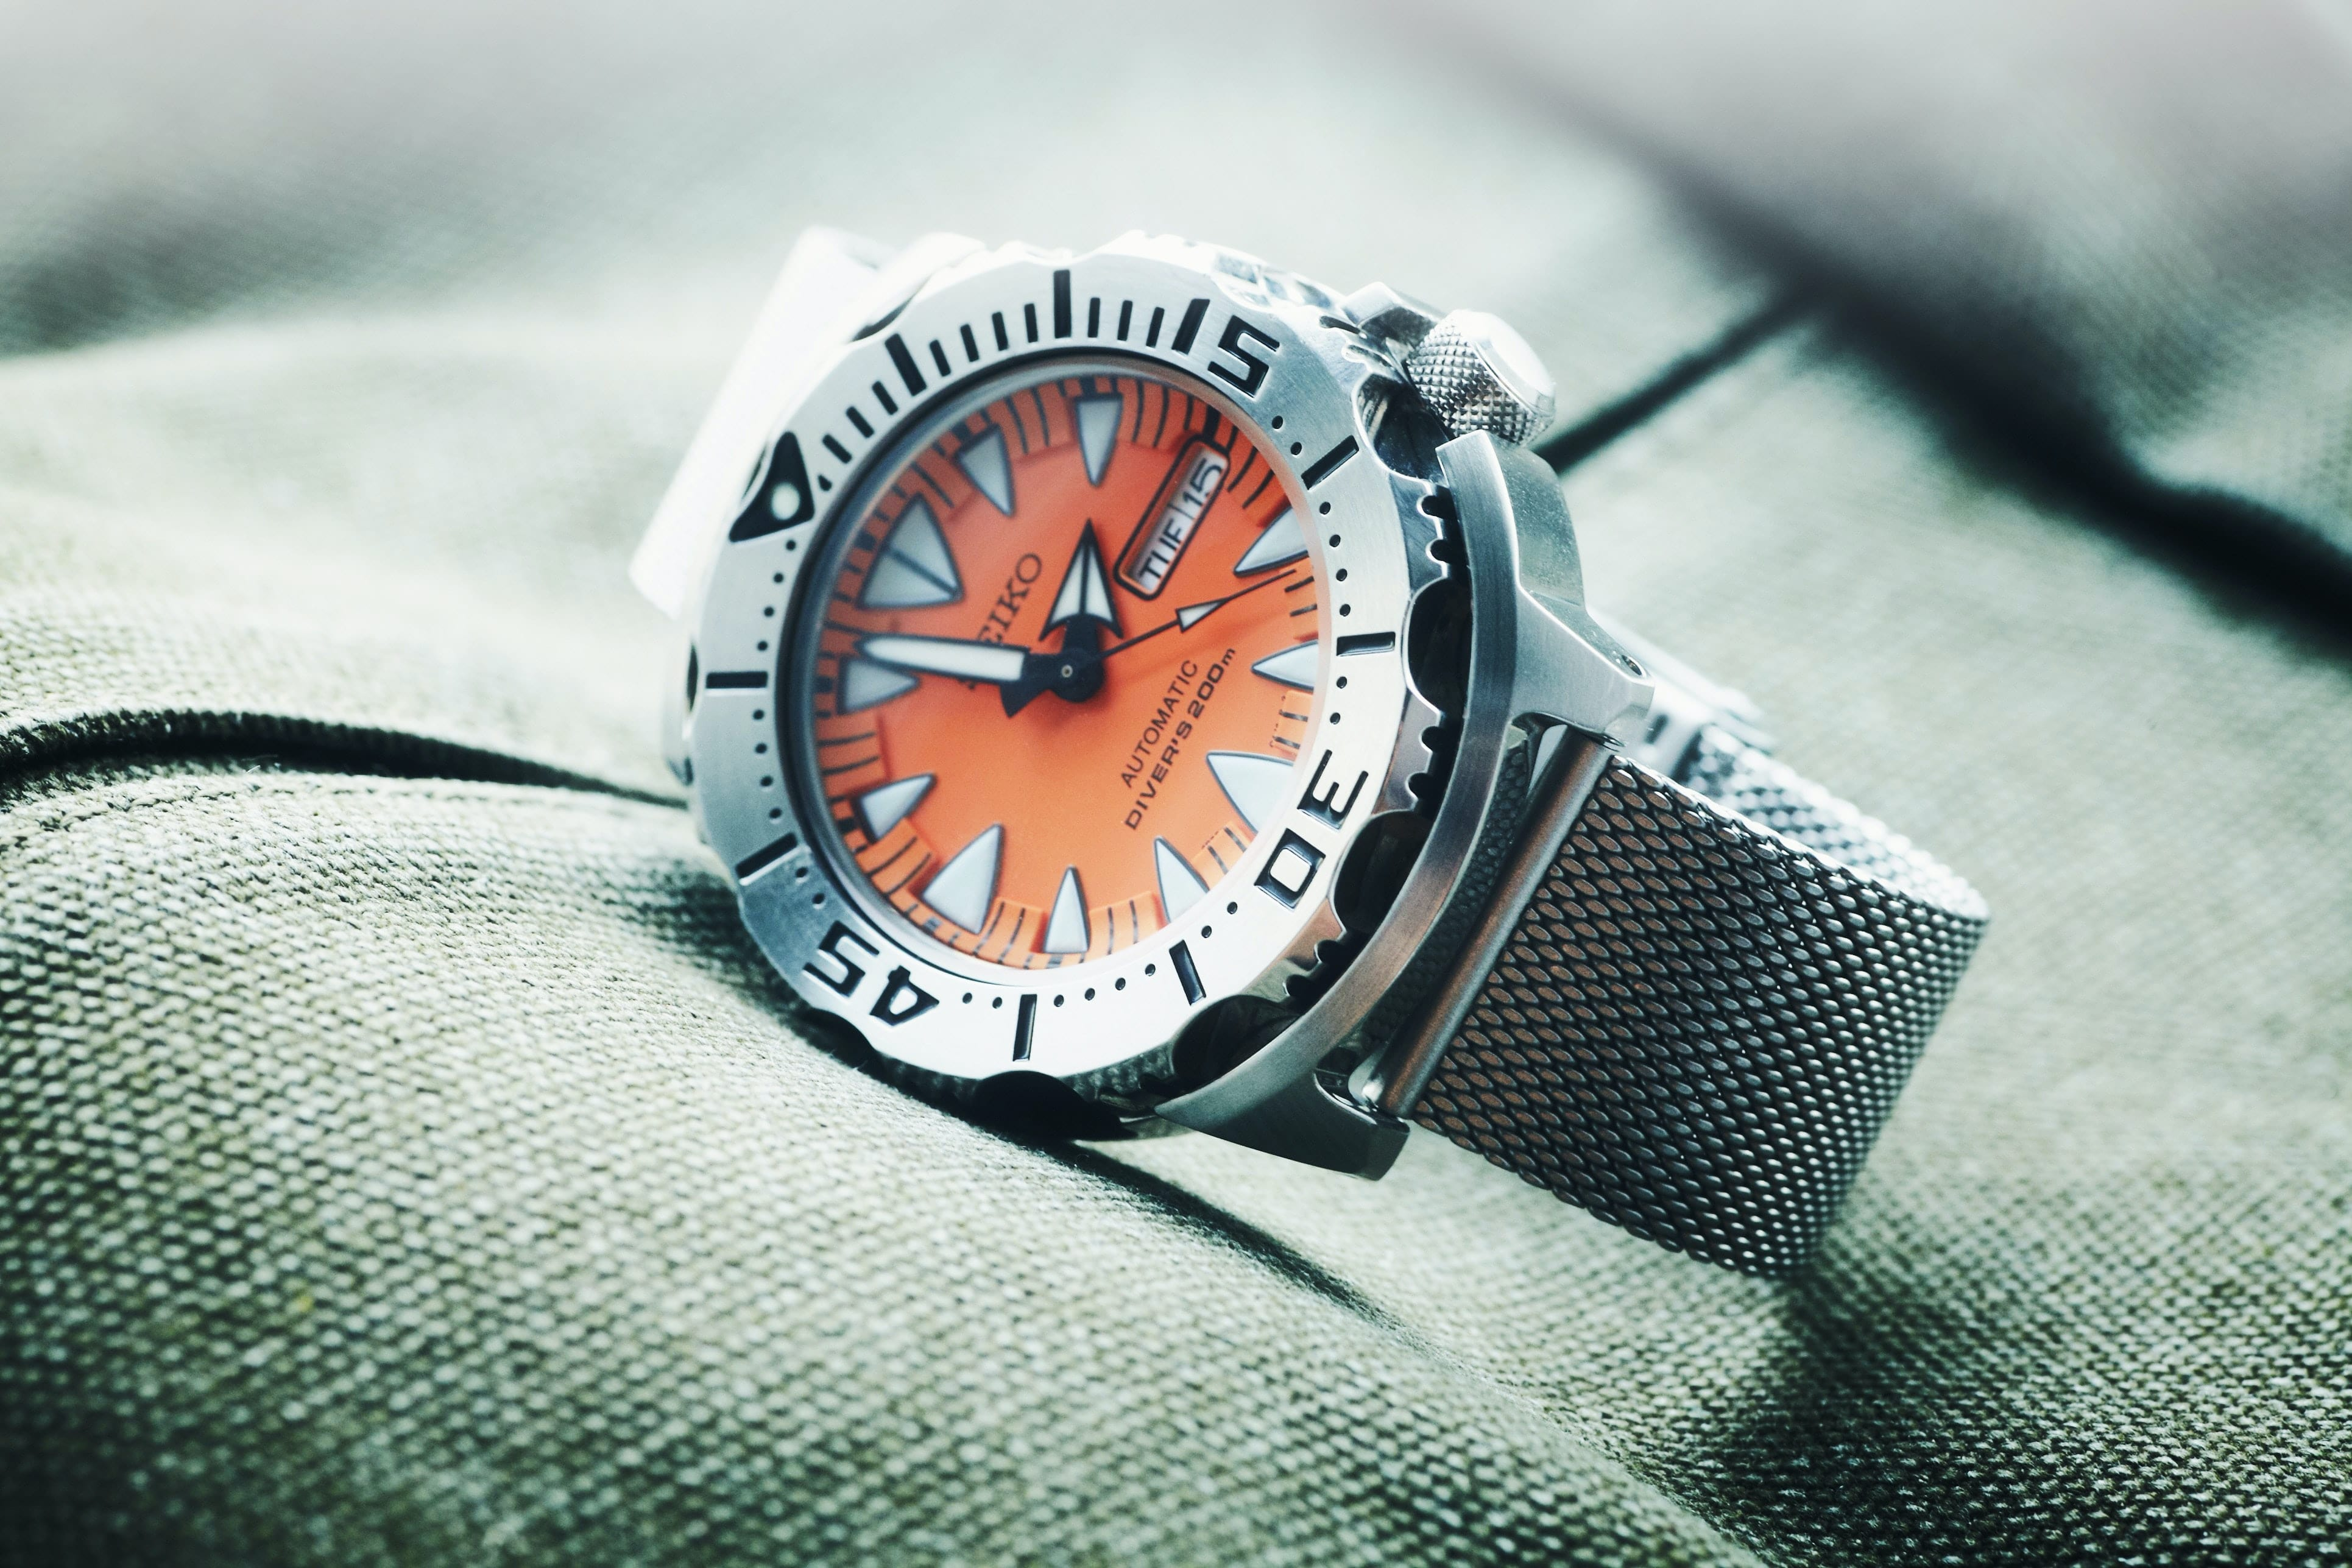 Image of a seiko dive watch